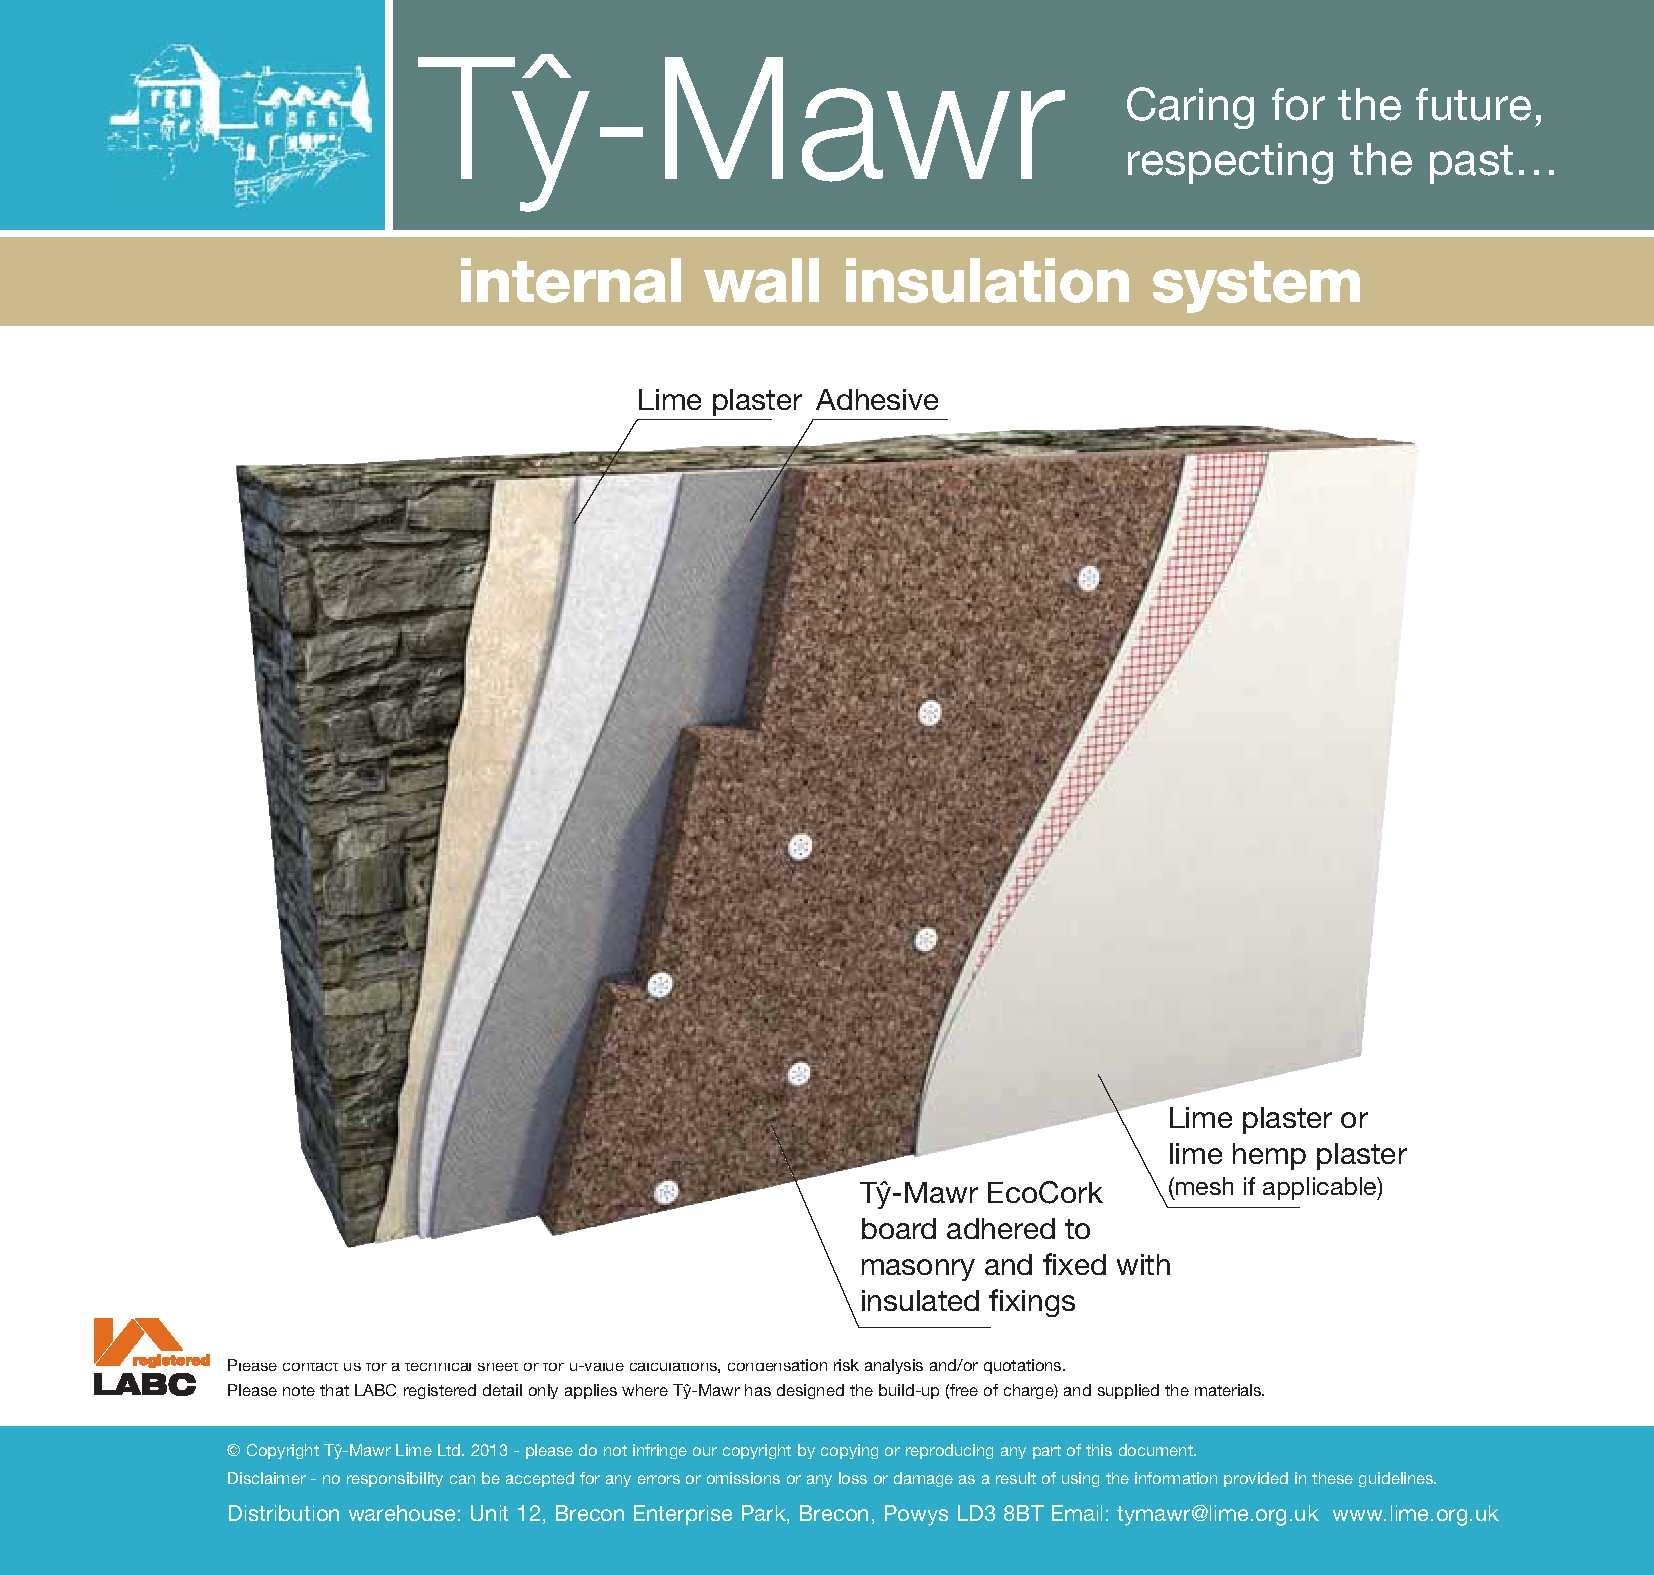 Expanded Cork Insulation System Internal Wall Internal Wall Insulation System Retrofit Insulation Systems For Old Buildings With New Timber Frame Extension Their Applications